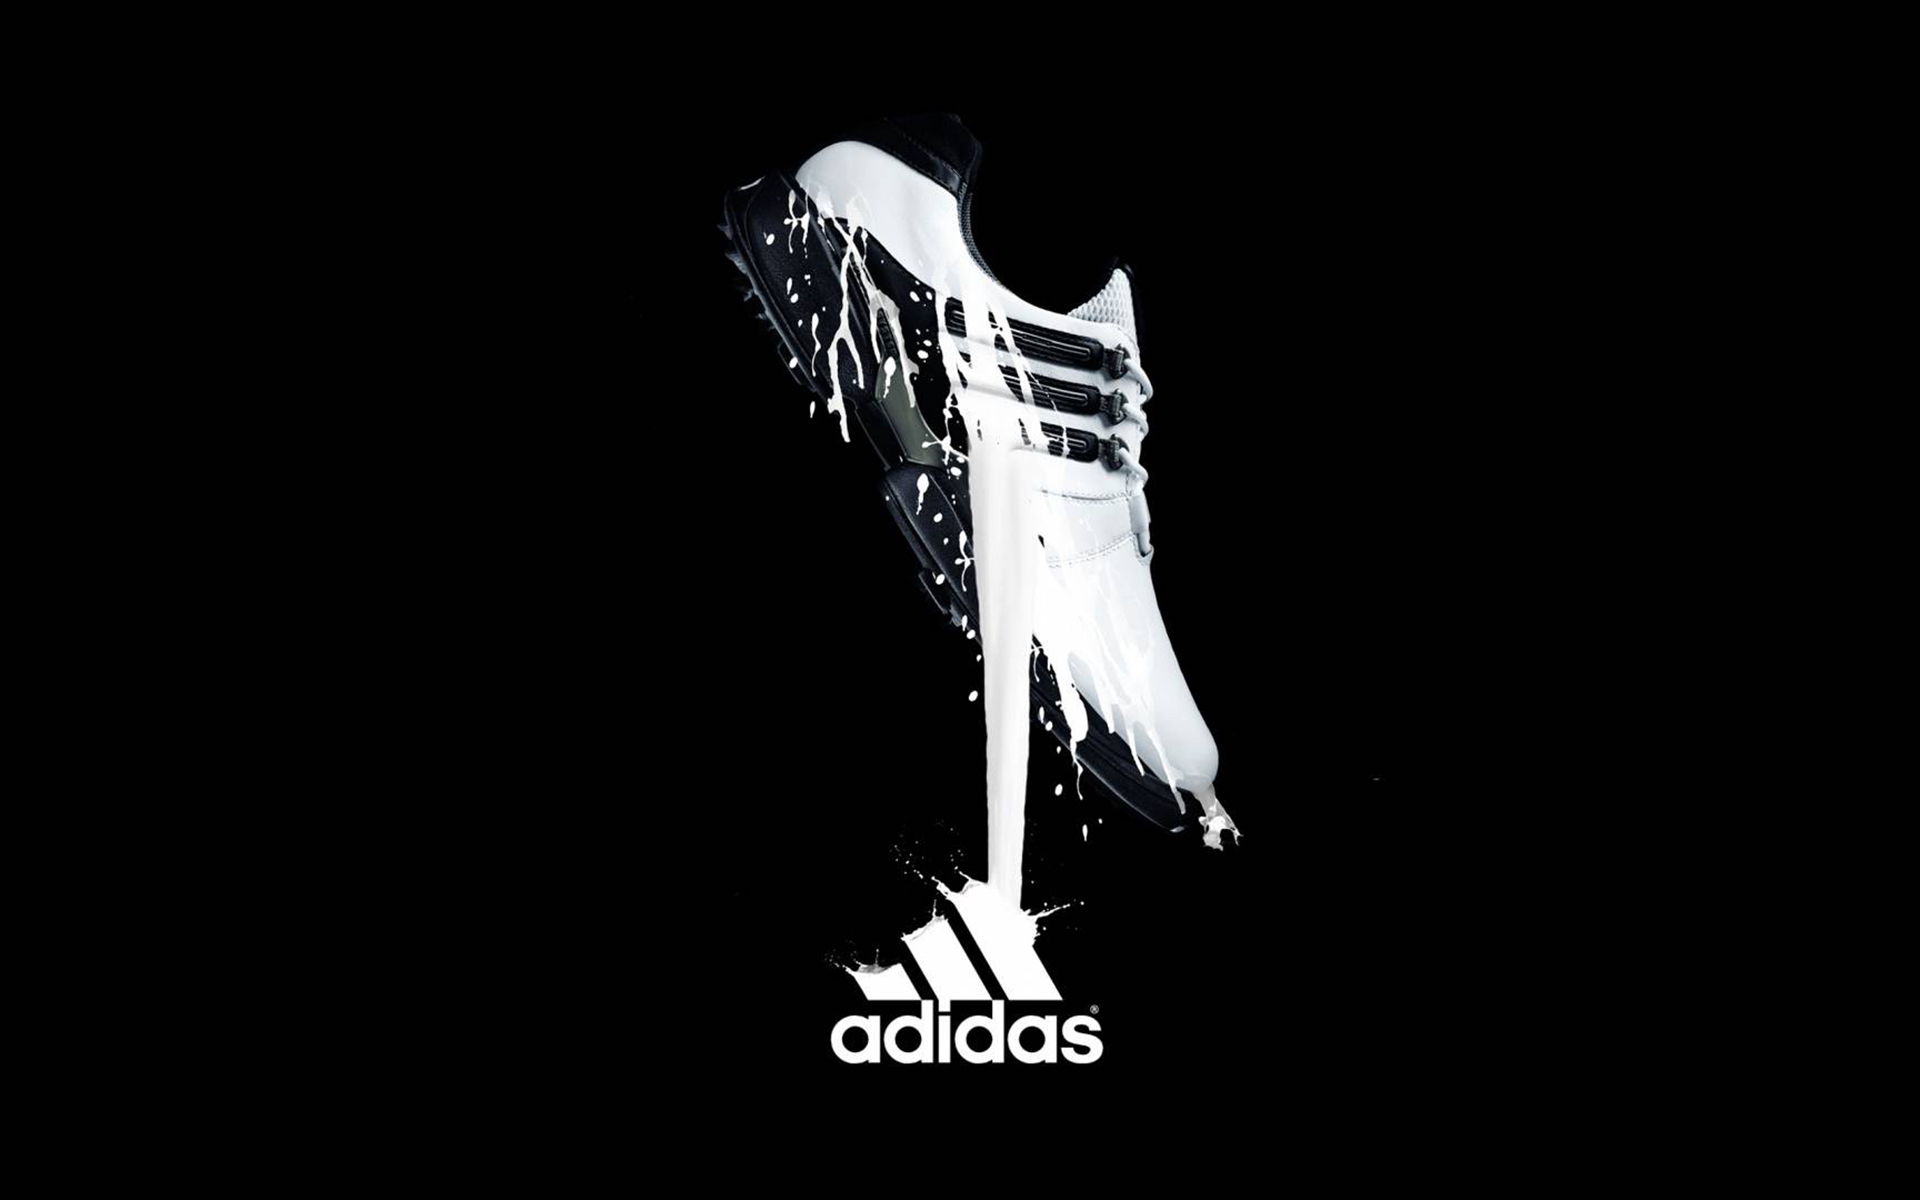 Adidas Lock Screen Logo Wallpaper For Iphone by lukejacobs02 .